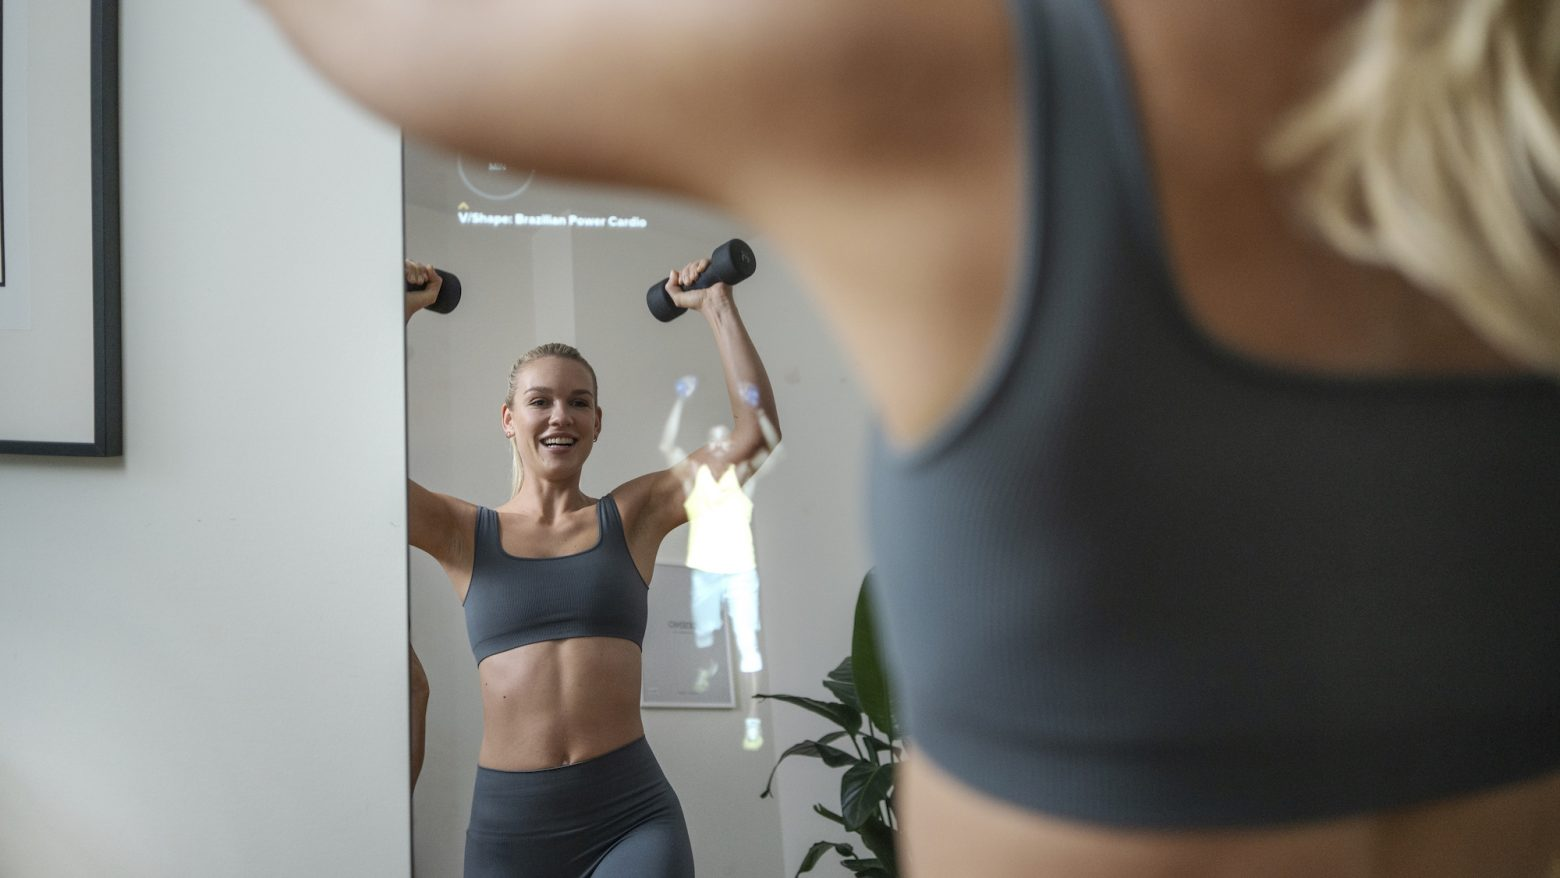 woman working out infant of the VAHA fitness mirror